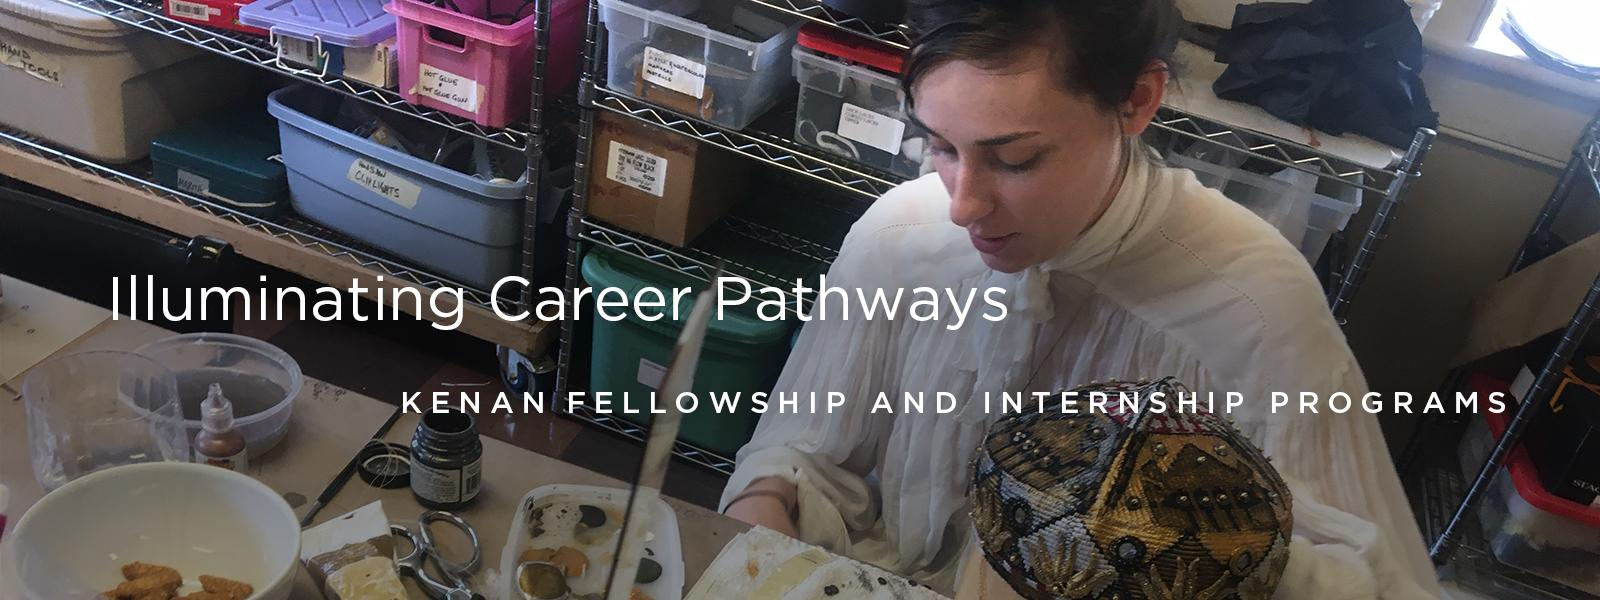 Illuminating Career Pathways - Kenan Fellowship Programs